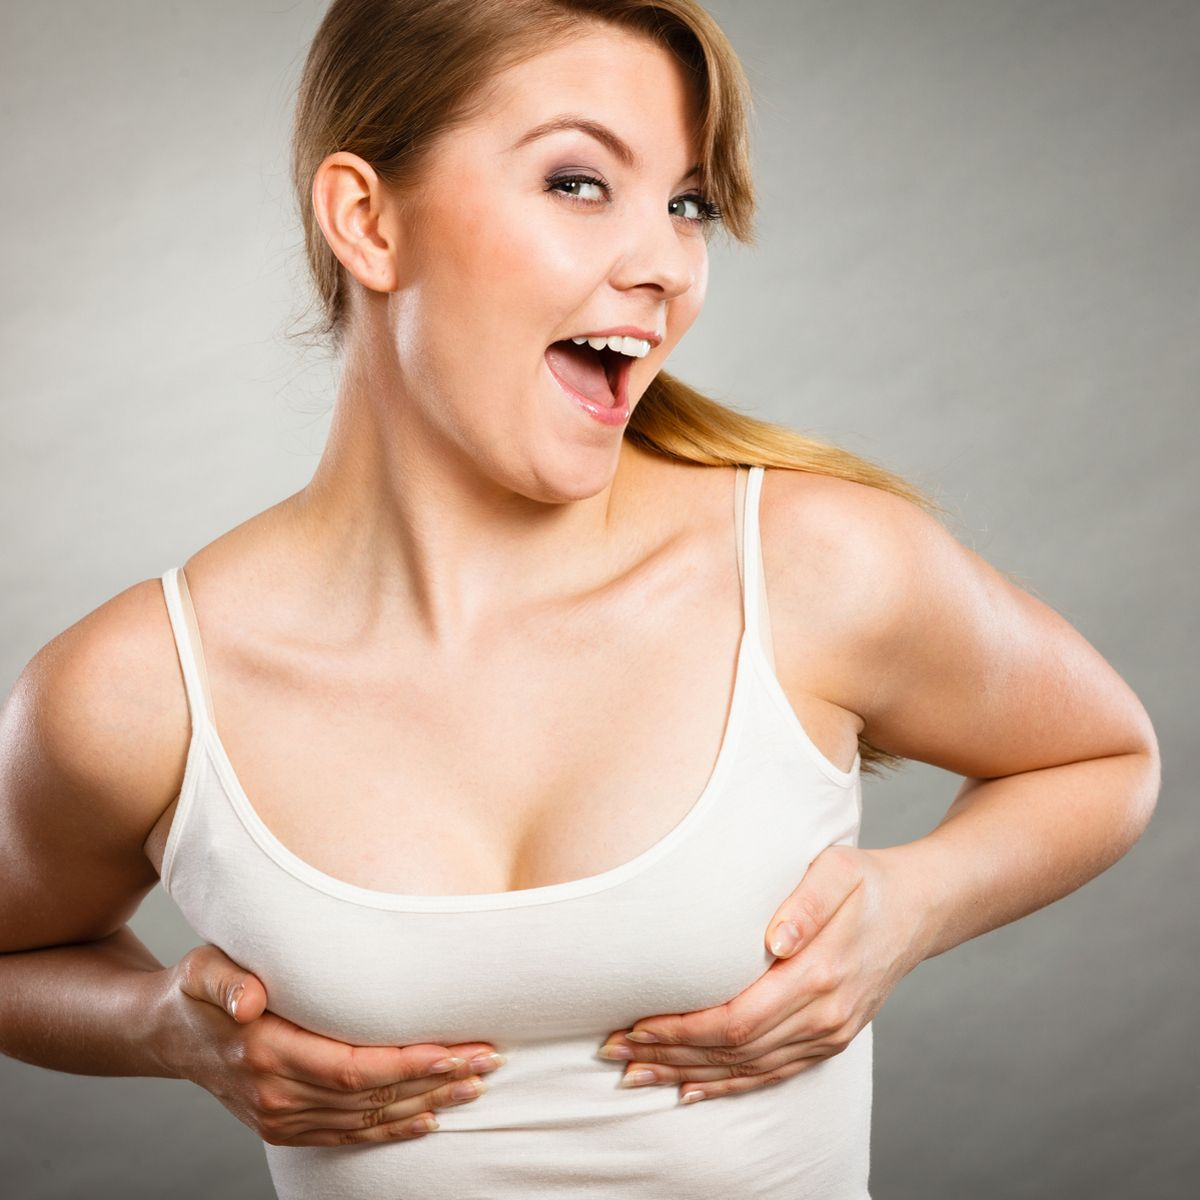 Vaseline for Breasts: Can It Make Them Larger?